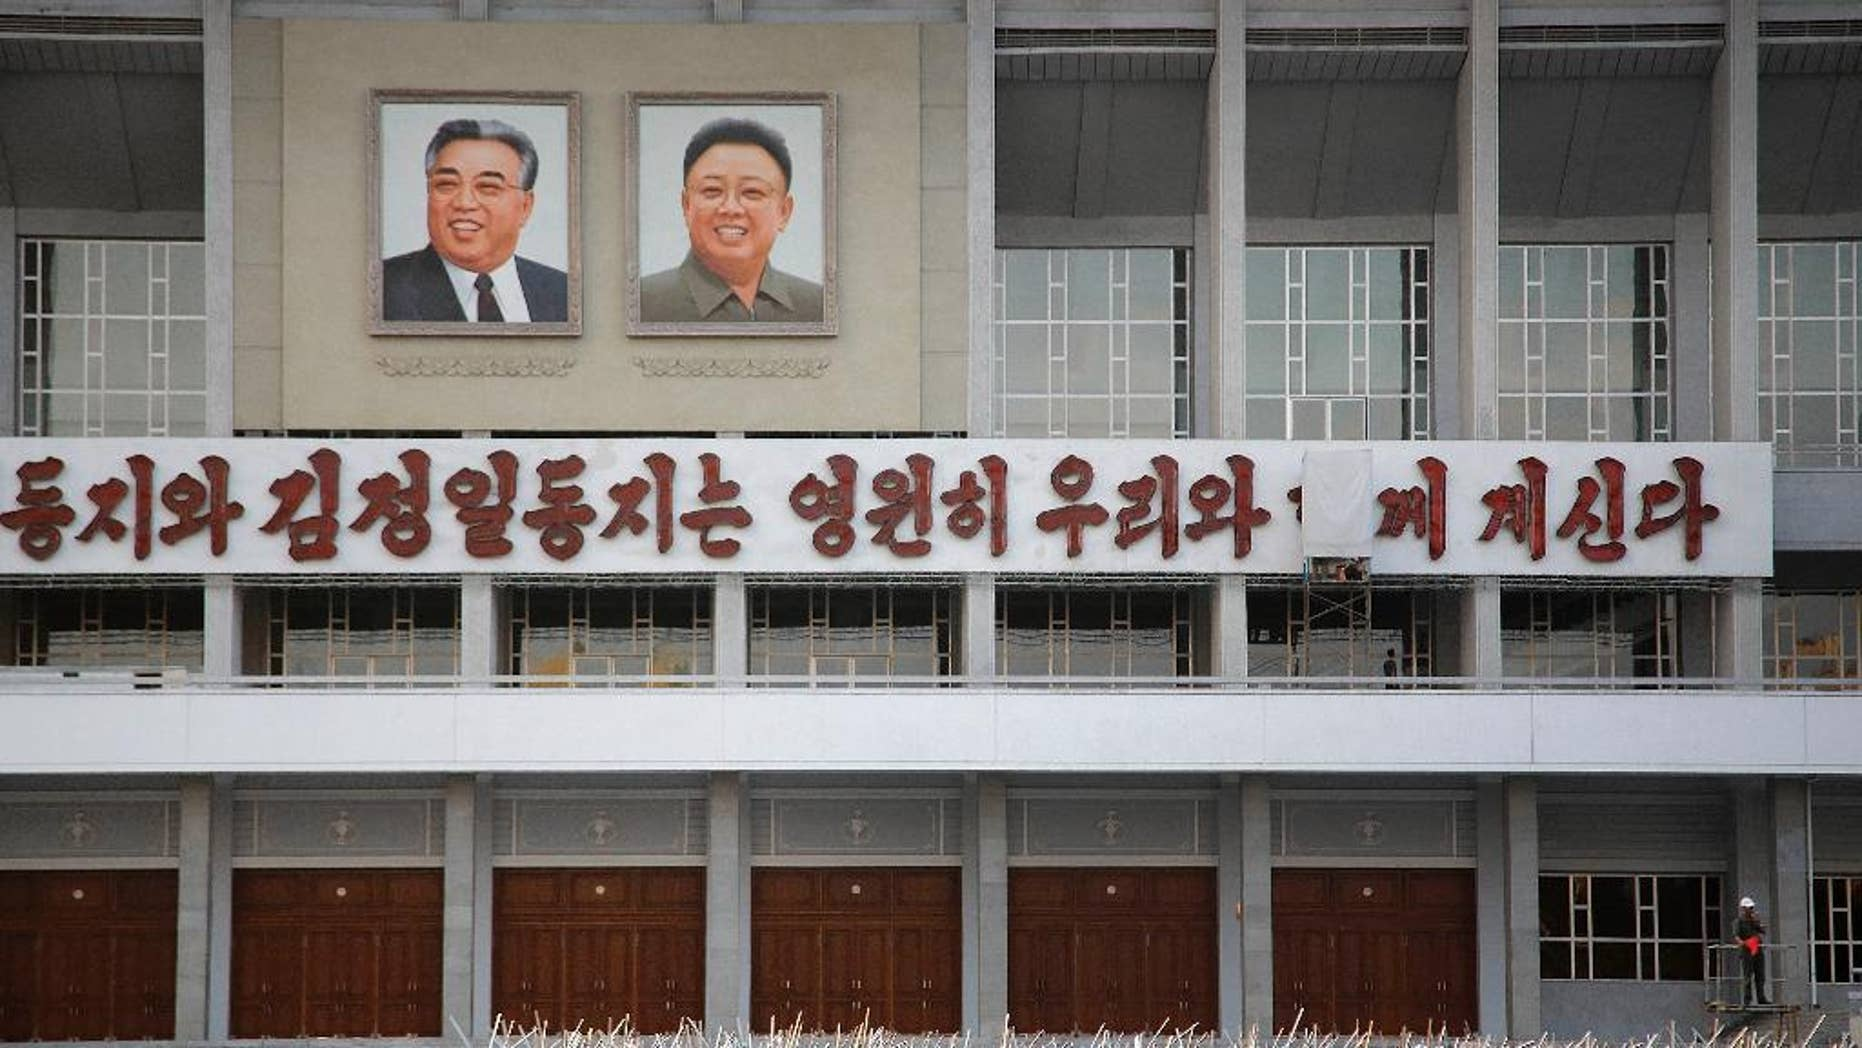 In this Tuesday, Sept. 15, 2015, photo, North Koreans gather in to prepare for events to be held during the 70th anniversary of the founding of their country's ruling party in October, in Pyongyang, North Korea. North Korea is already in high gear as it prepares to mark the 70th anniversary of the founding of its ruling party. Students and workers are being mobilized by the thousands to practice their parts in the grand show - some carrying wooden torches, others bouquets of red plastic flowers. (AP Photo/Wong Maye-E)